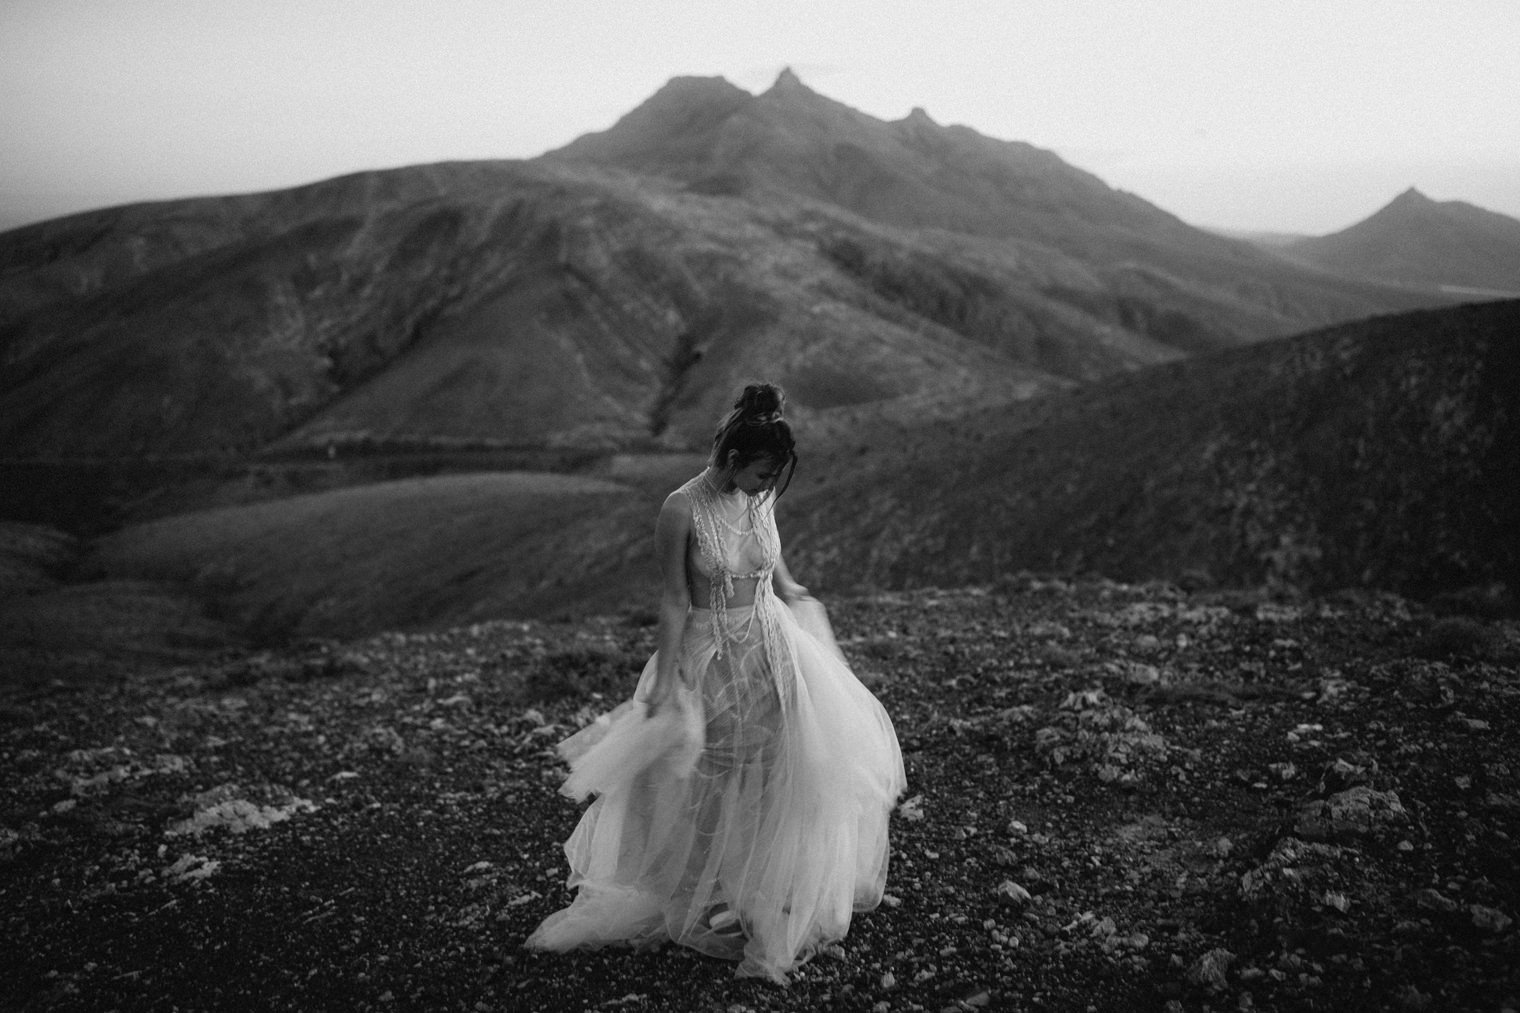 black and white photo of bride swaying her Marco & Maria Wedding gown